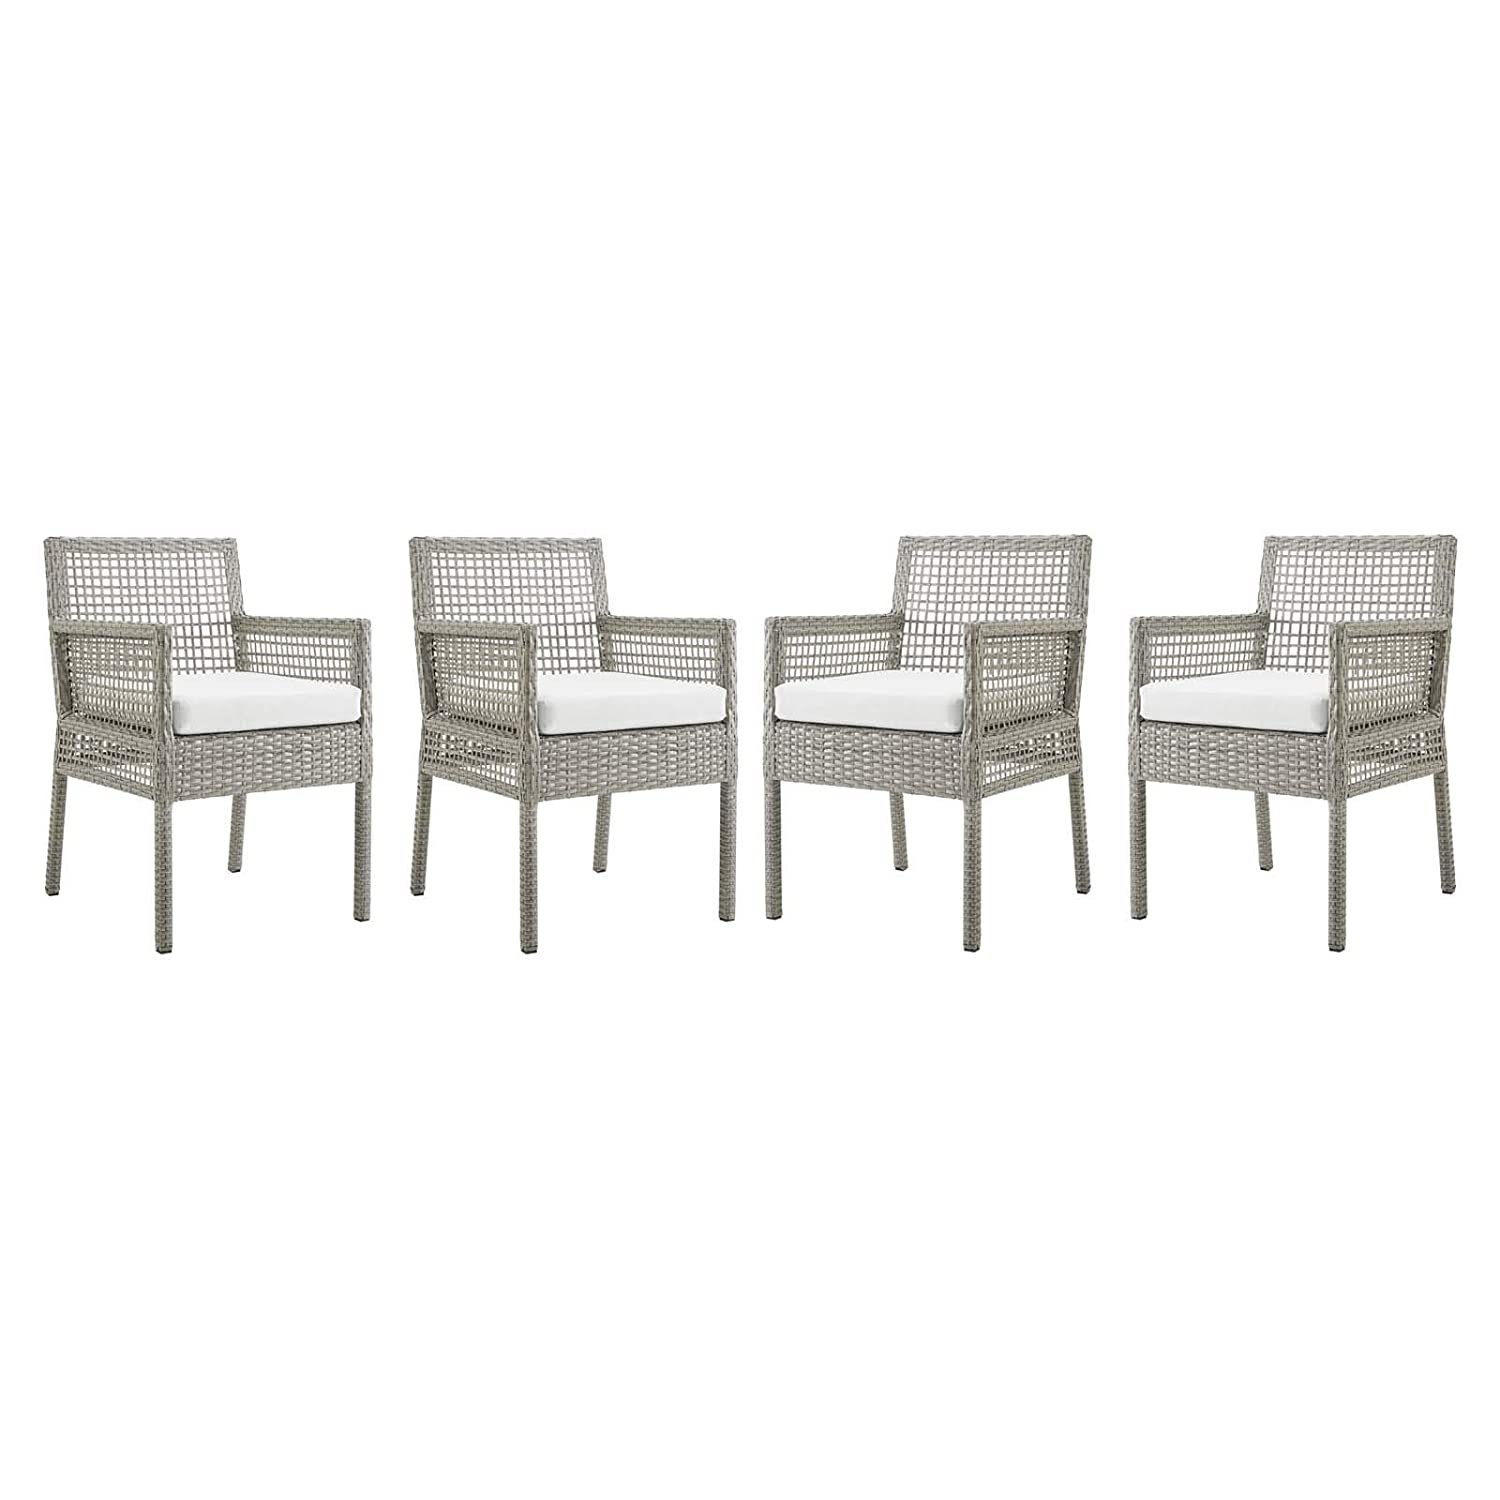 Modway EEI-3594-GRY-WHI Aura Dining Armchair Outdoor Patio Wicker Rattan Set of 4, Four, Gray White